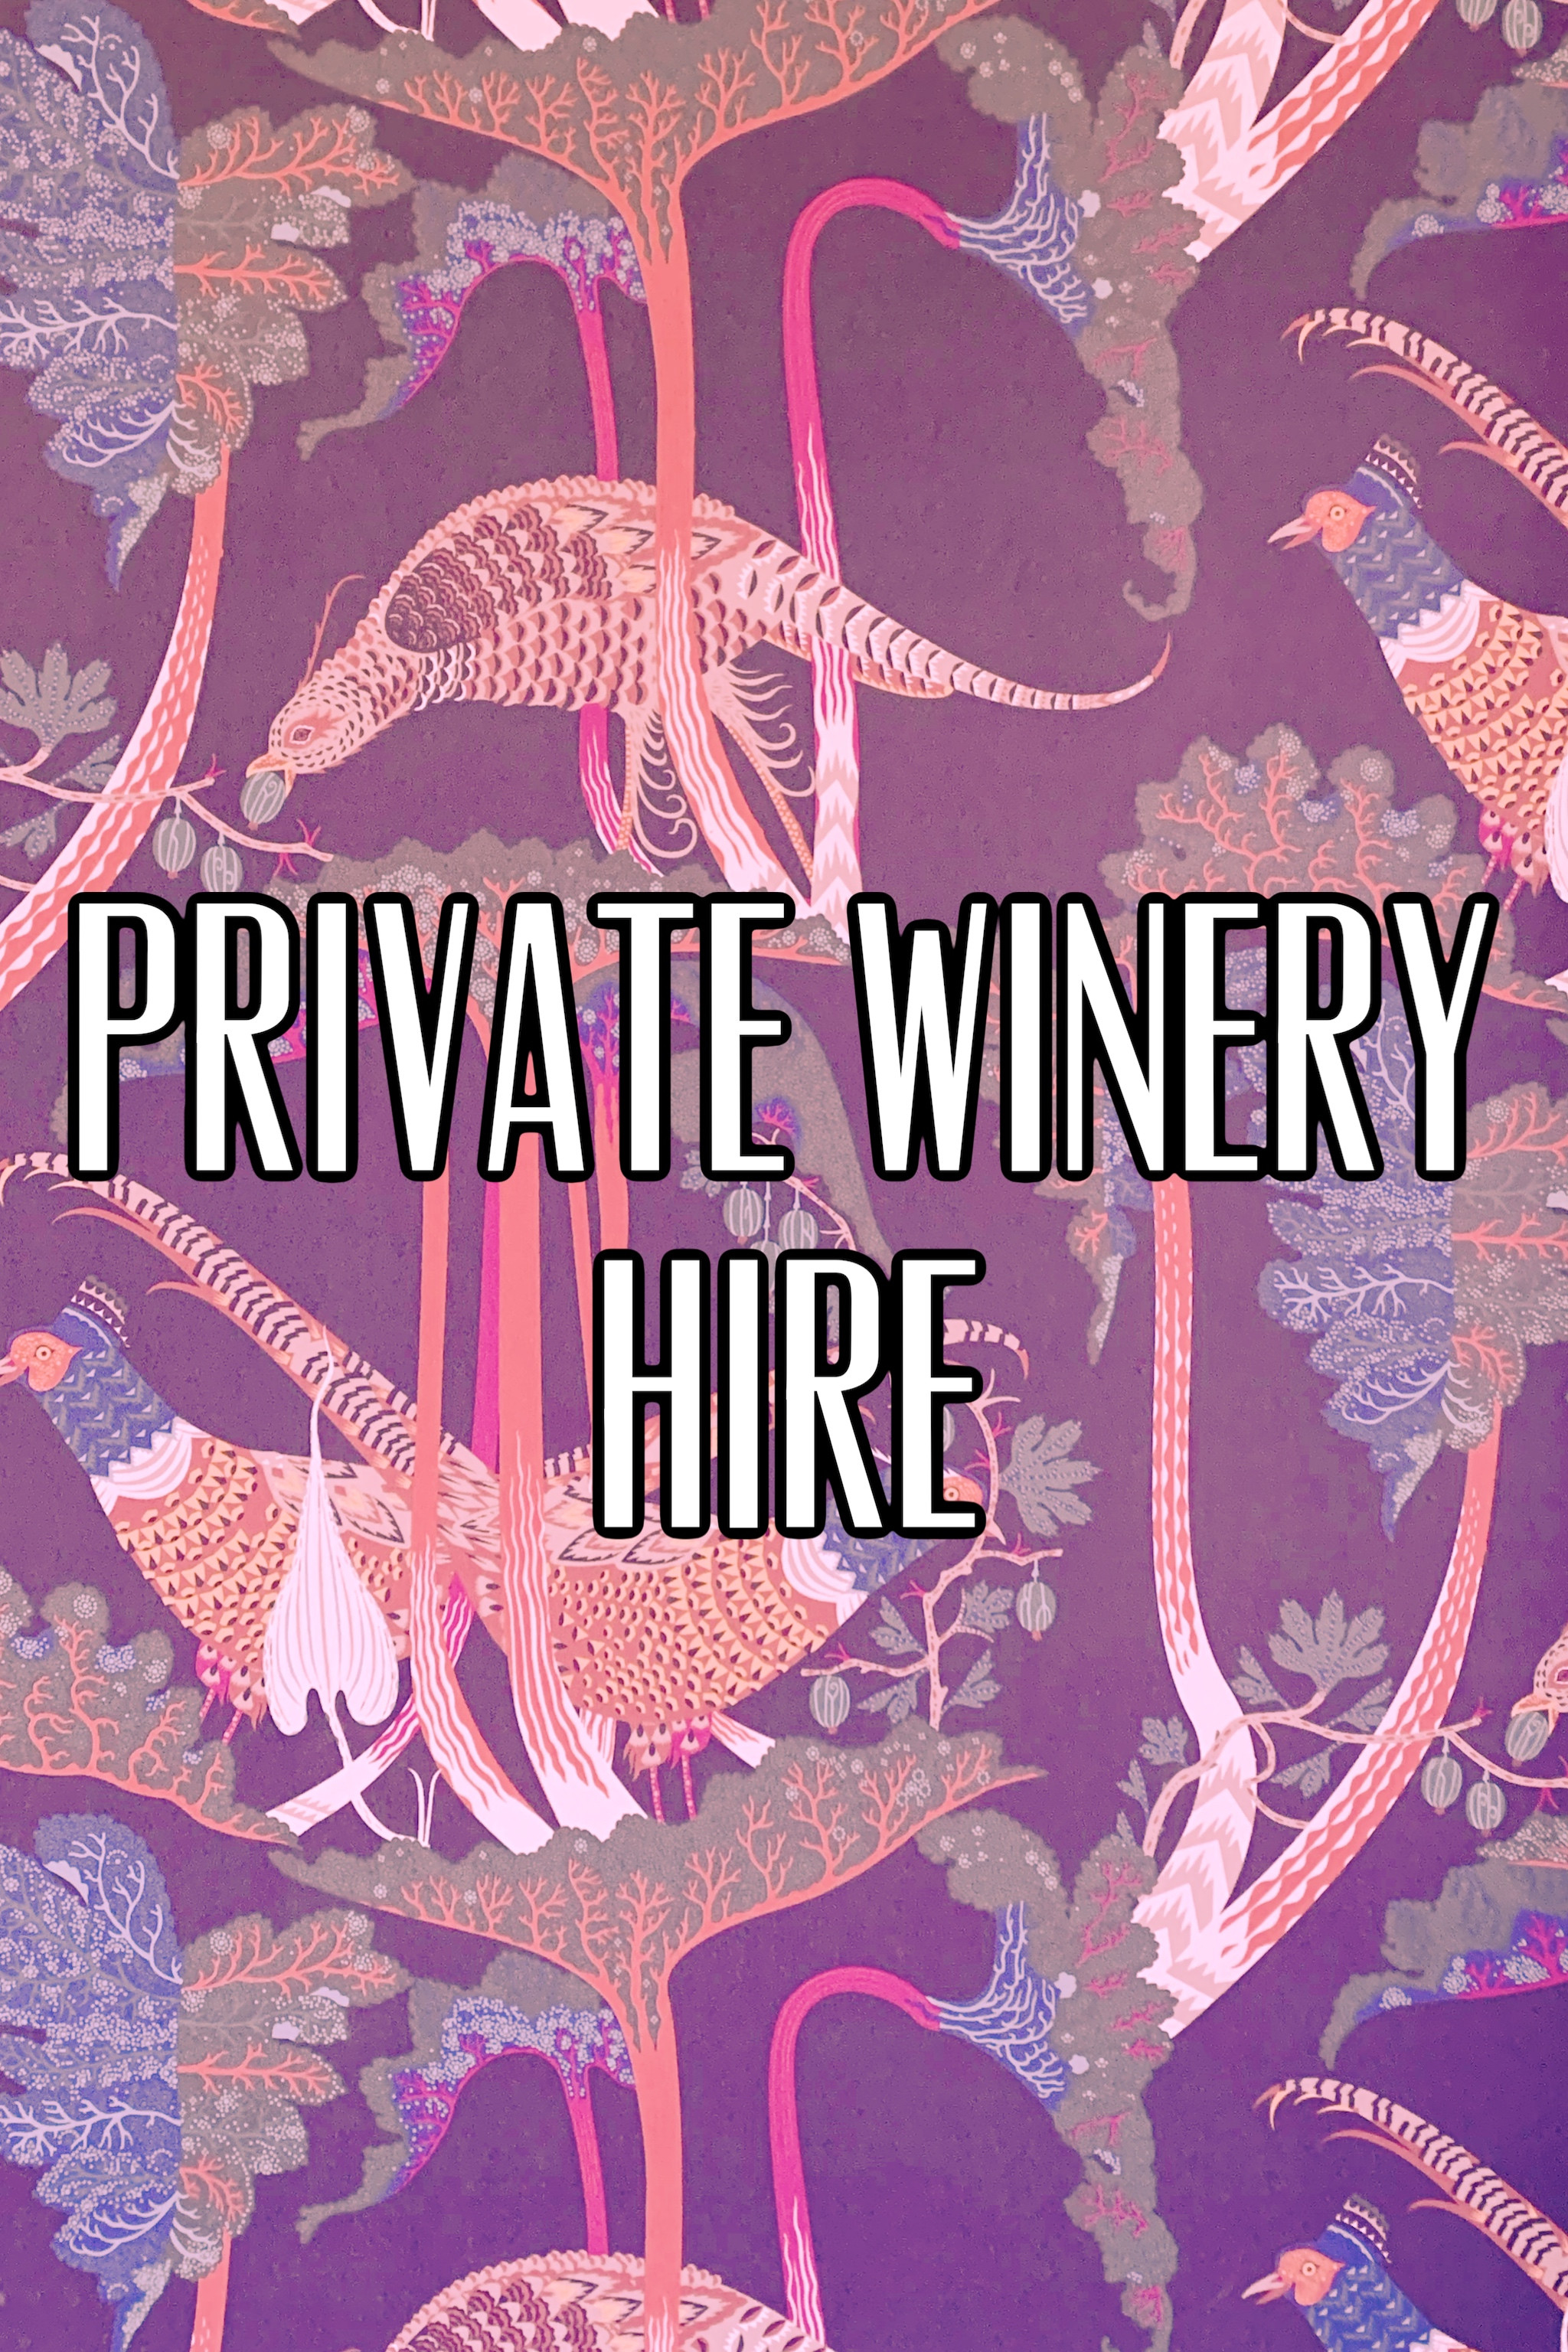 Hire the FV winery & bar